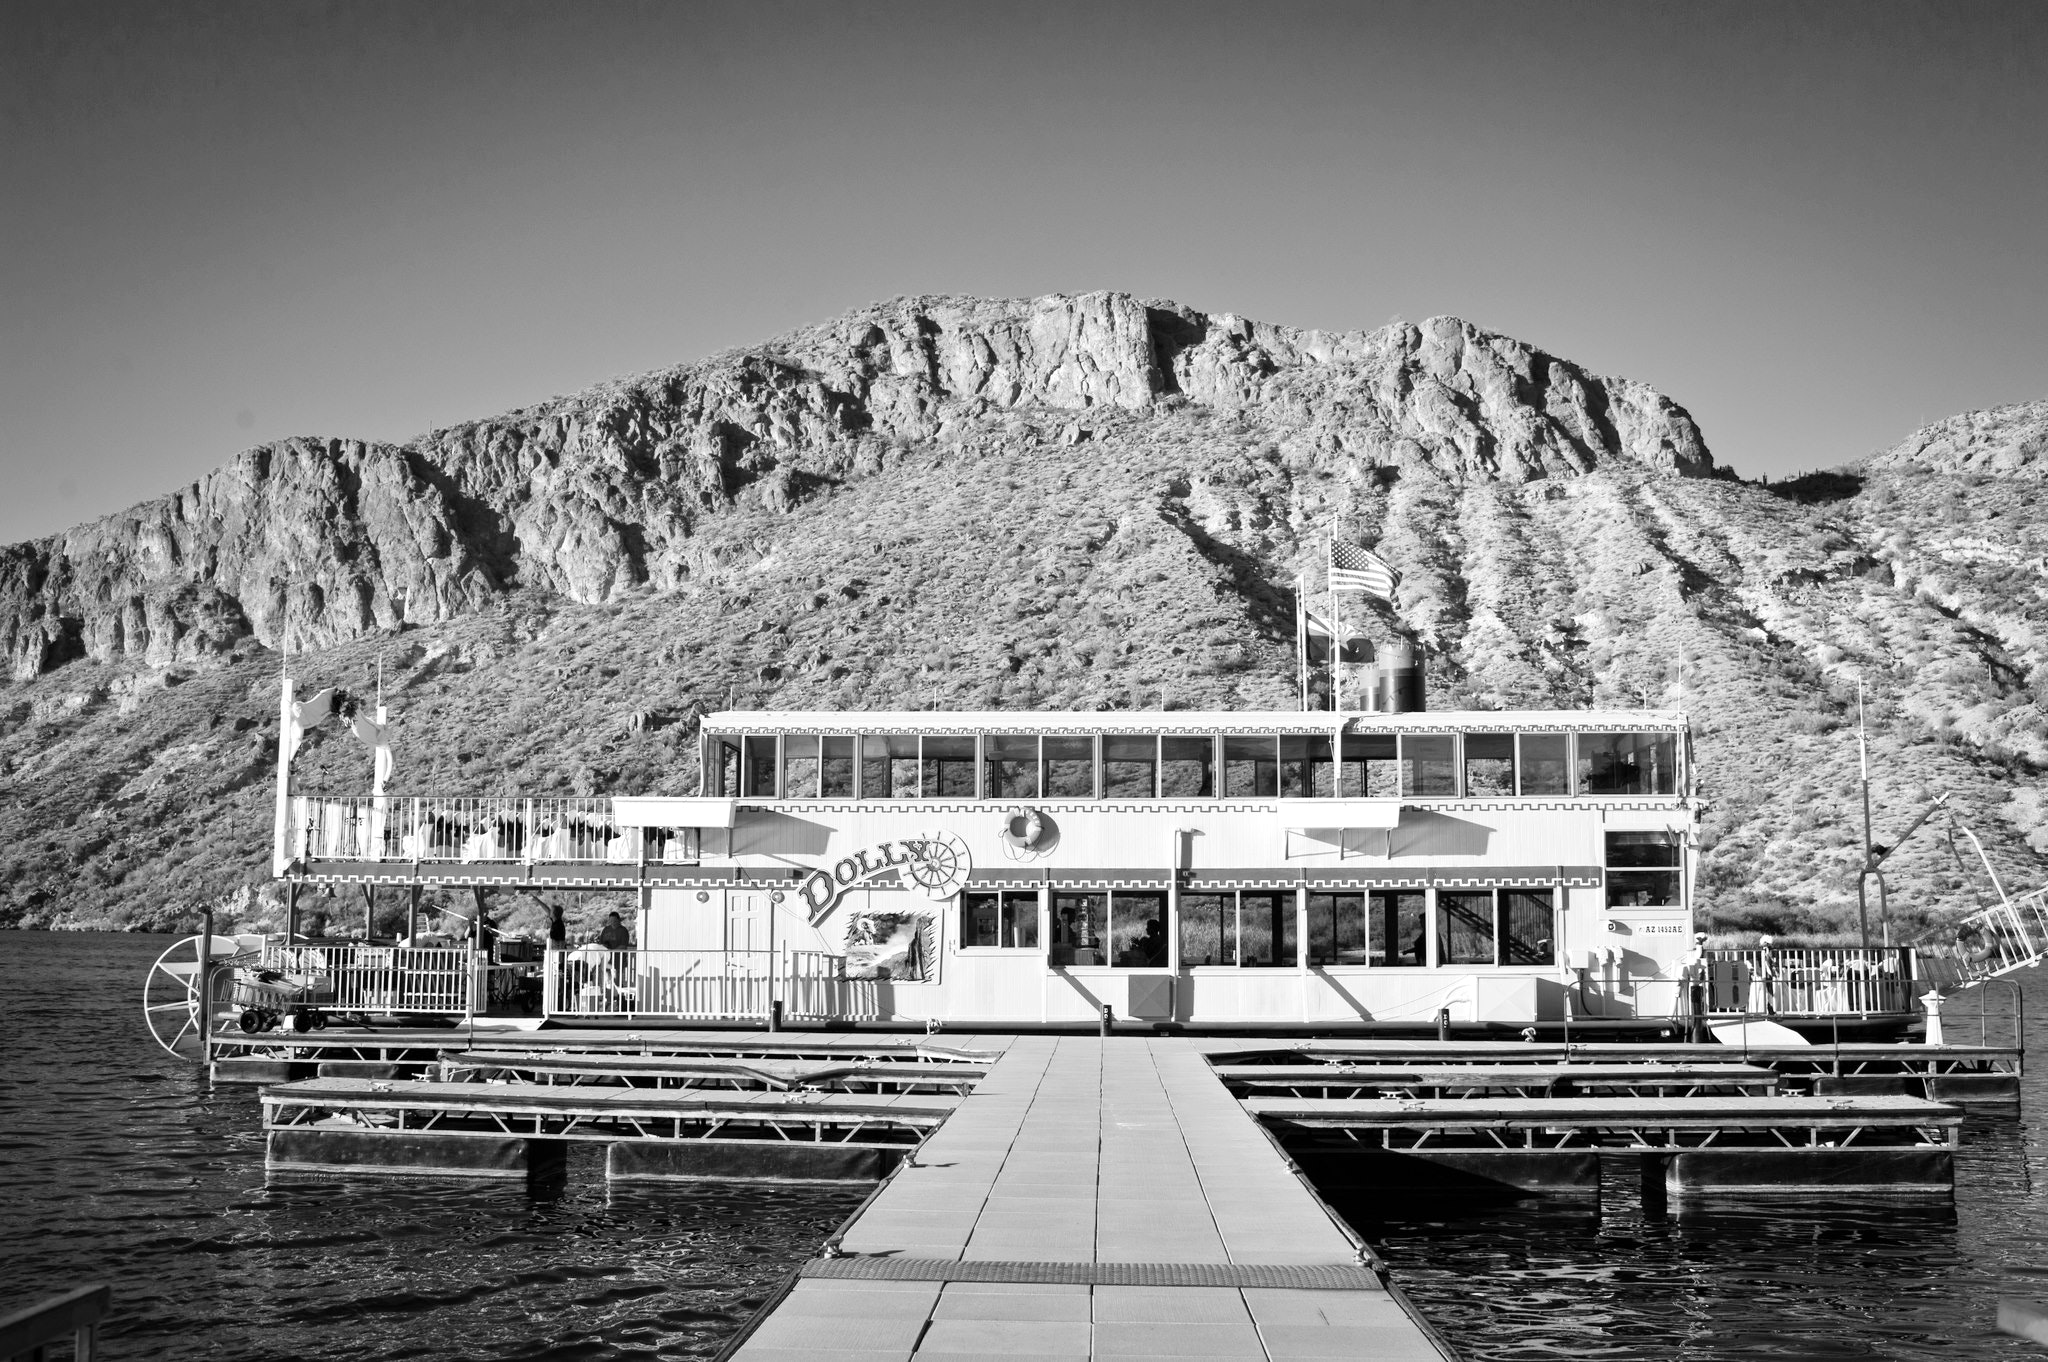 Dolly Steamboat at dock in black and white